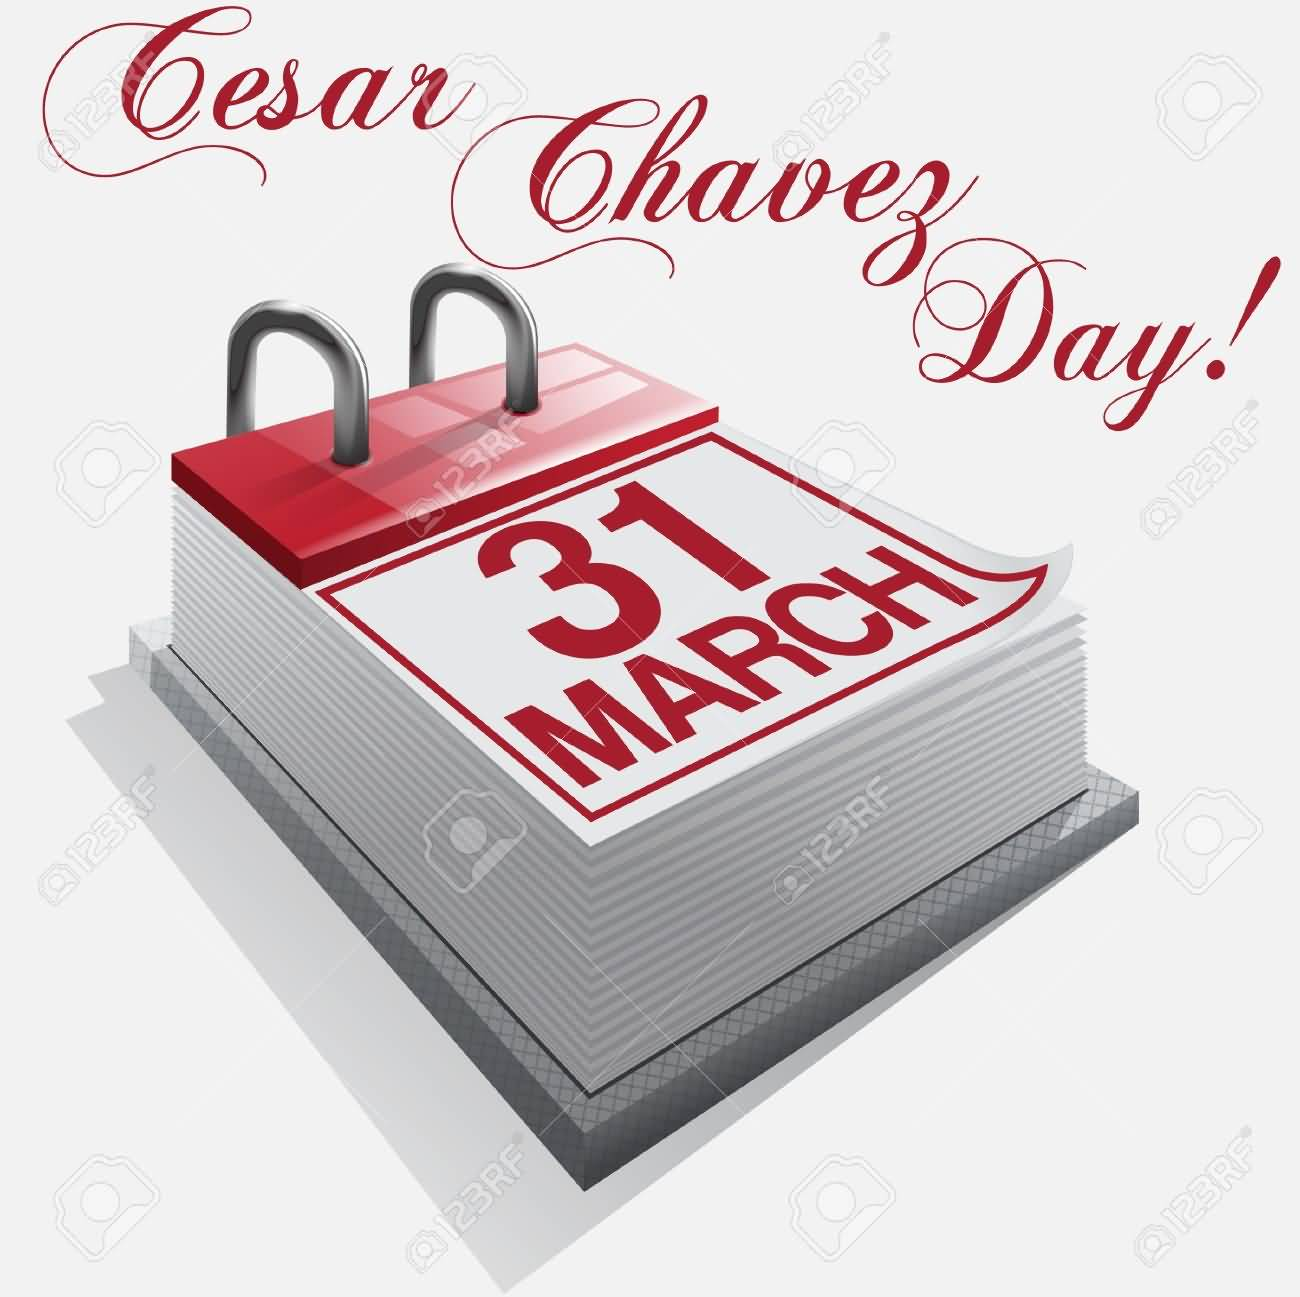 22-Cesar Chavez Day Wishes